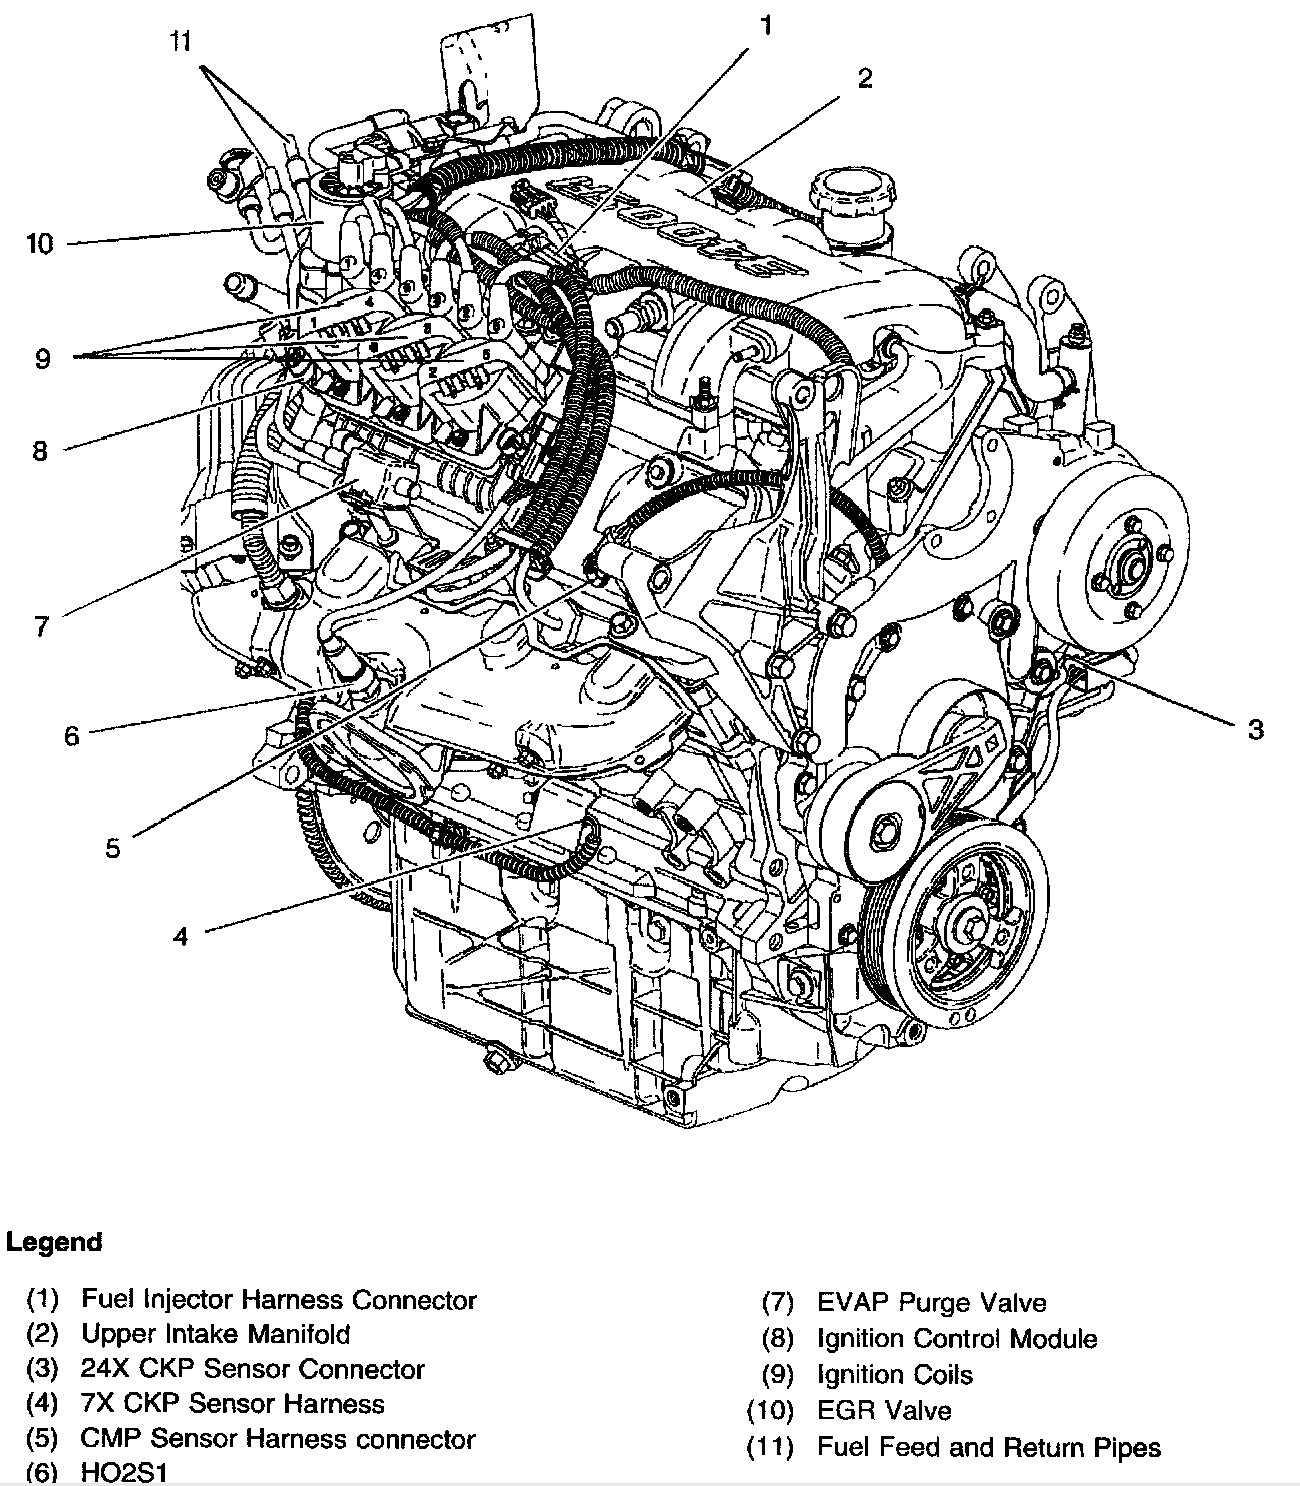 Gm 3800 Engine Diagram V6 Engine Diagram Library Wiring Diagram • Of Gm 3800 Engine Diagram